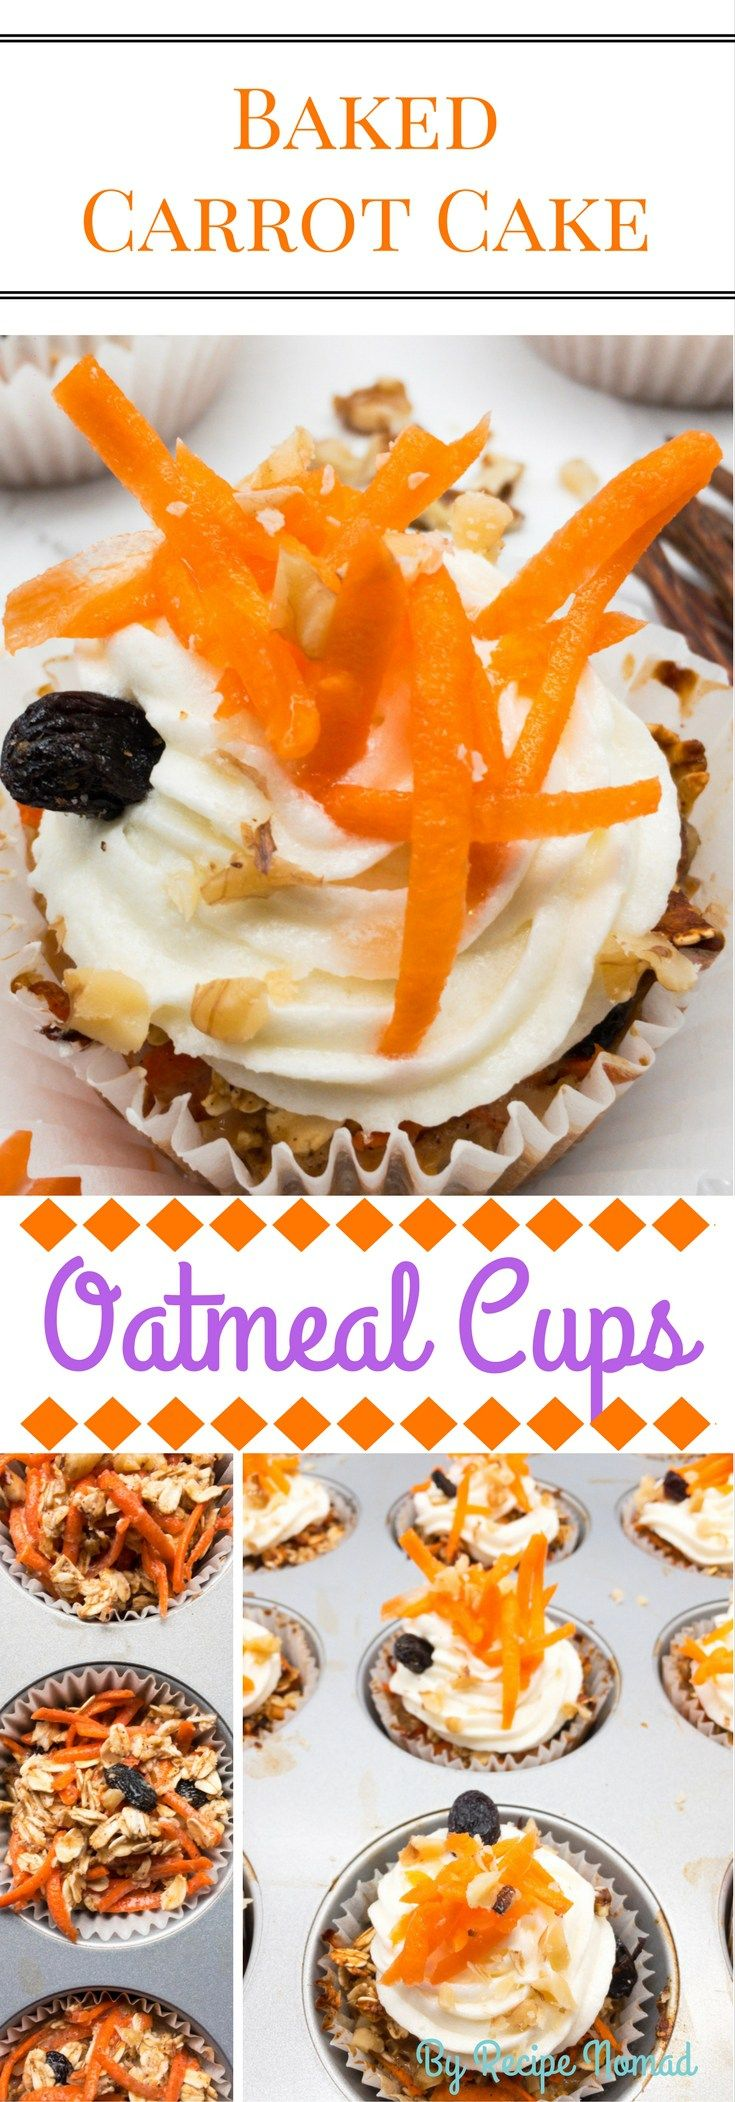 These Baked Carrot Cake Oatmeal Cups are full of shredded carrots, raisins and walnuts and they're healthier and even more delicious than traditional Carrot Cake! They make the perfect on-the-go breakfast or afternoon treat!  Baked Carrot Cake Oatmeal Cups   Recipe Nomad  http://www.recipenomad.com/baked-carrot-cake-oatmeal-cups/